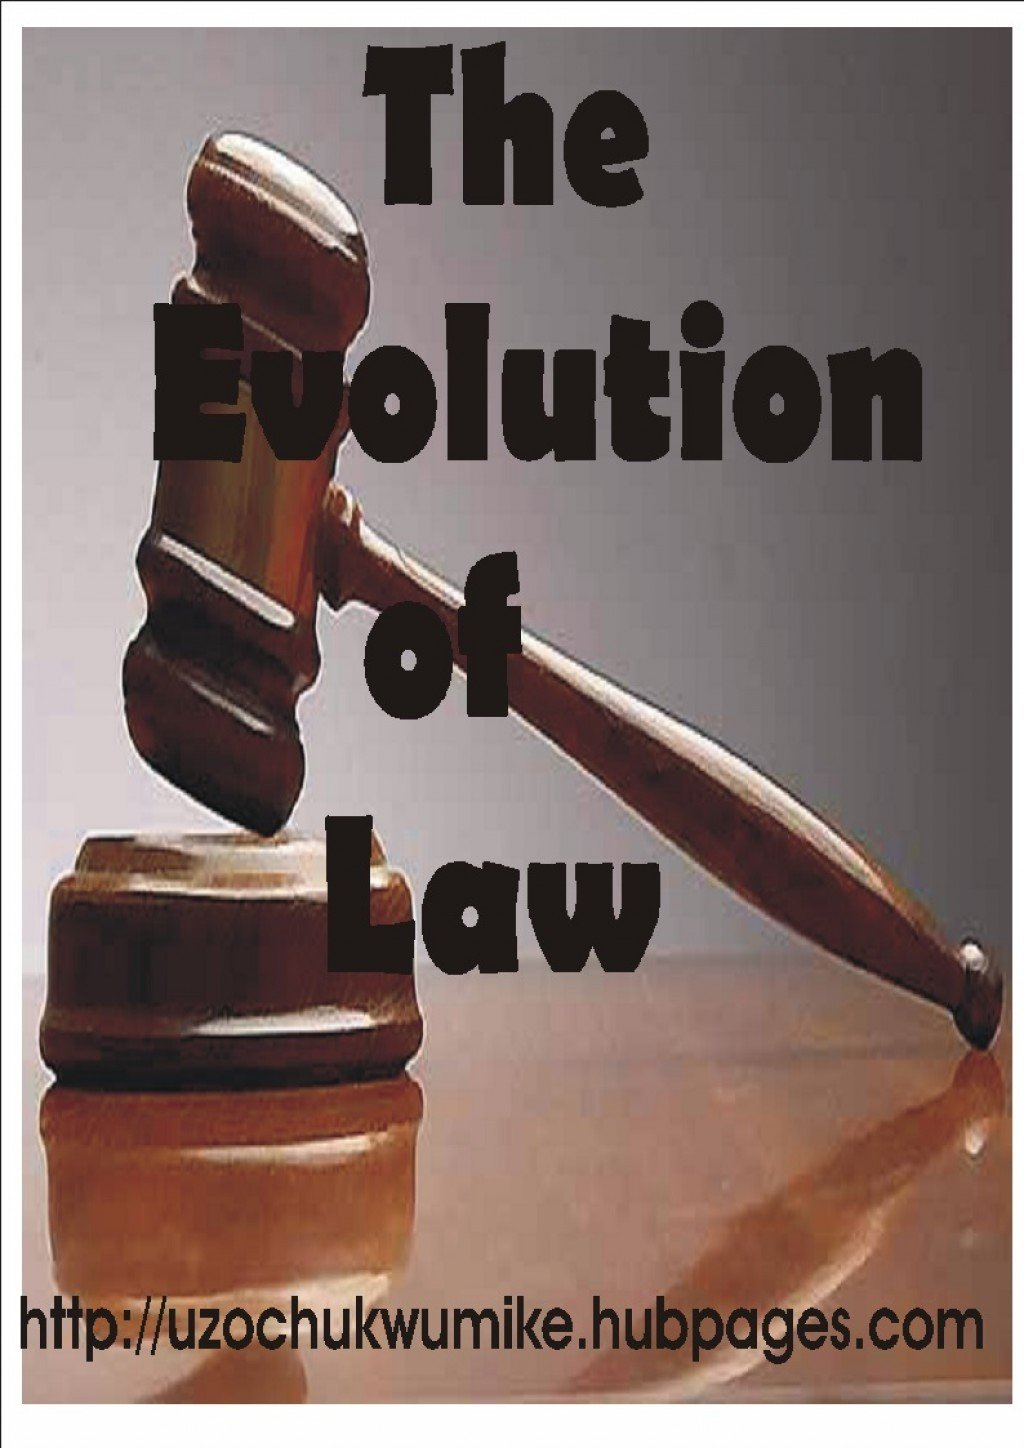 evolution of law September 2018: part i - establishing the trust special needs trusts are an evolving creature of statute this process of trust development has been fueled by court decisions, statutory changes, and the social security administration's own interpretation of its rules.